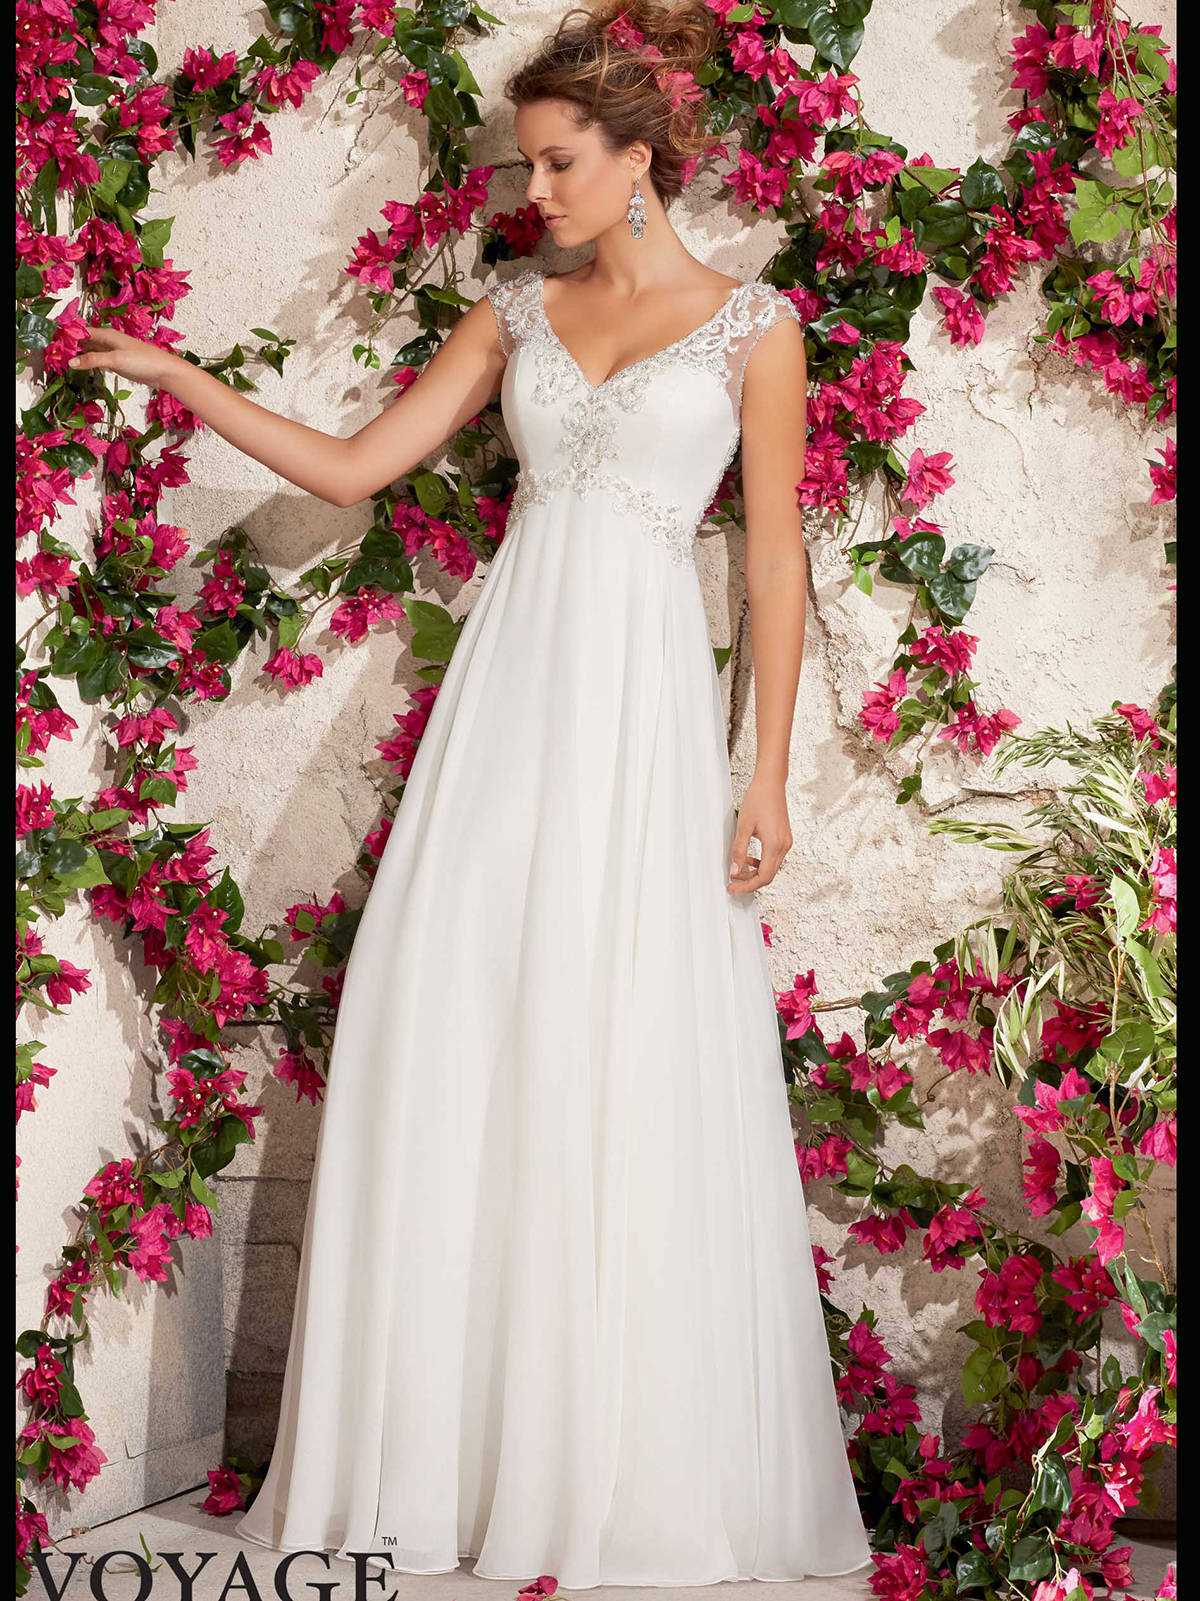 V Neck With Cap Sleeves Flowing A Line Mori Lee Voyage Wedding Dress 6792